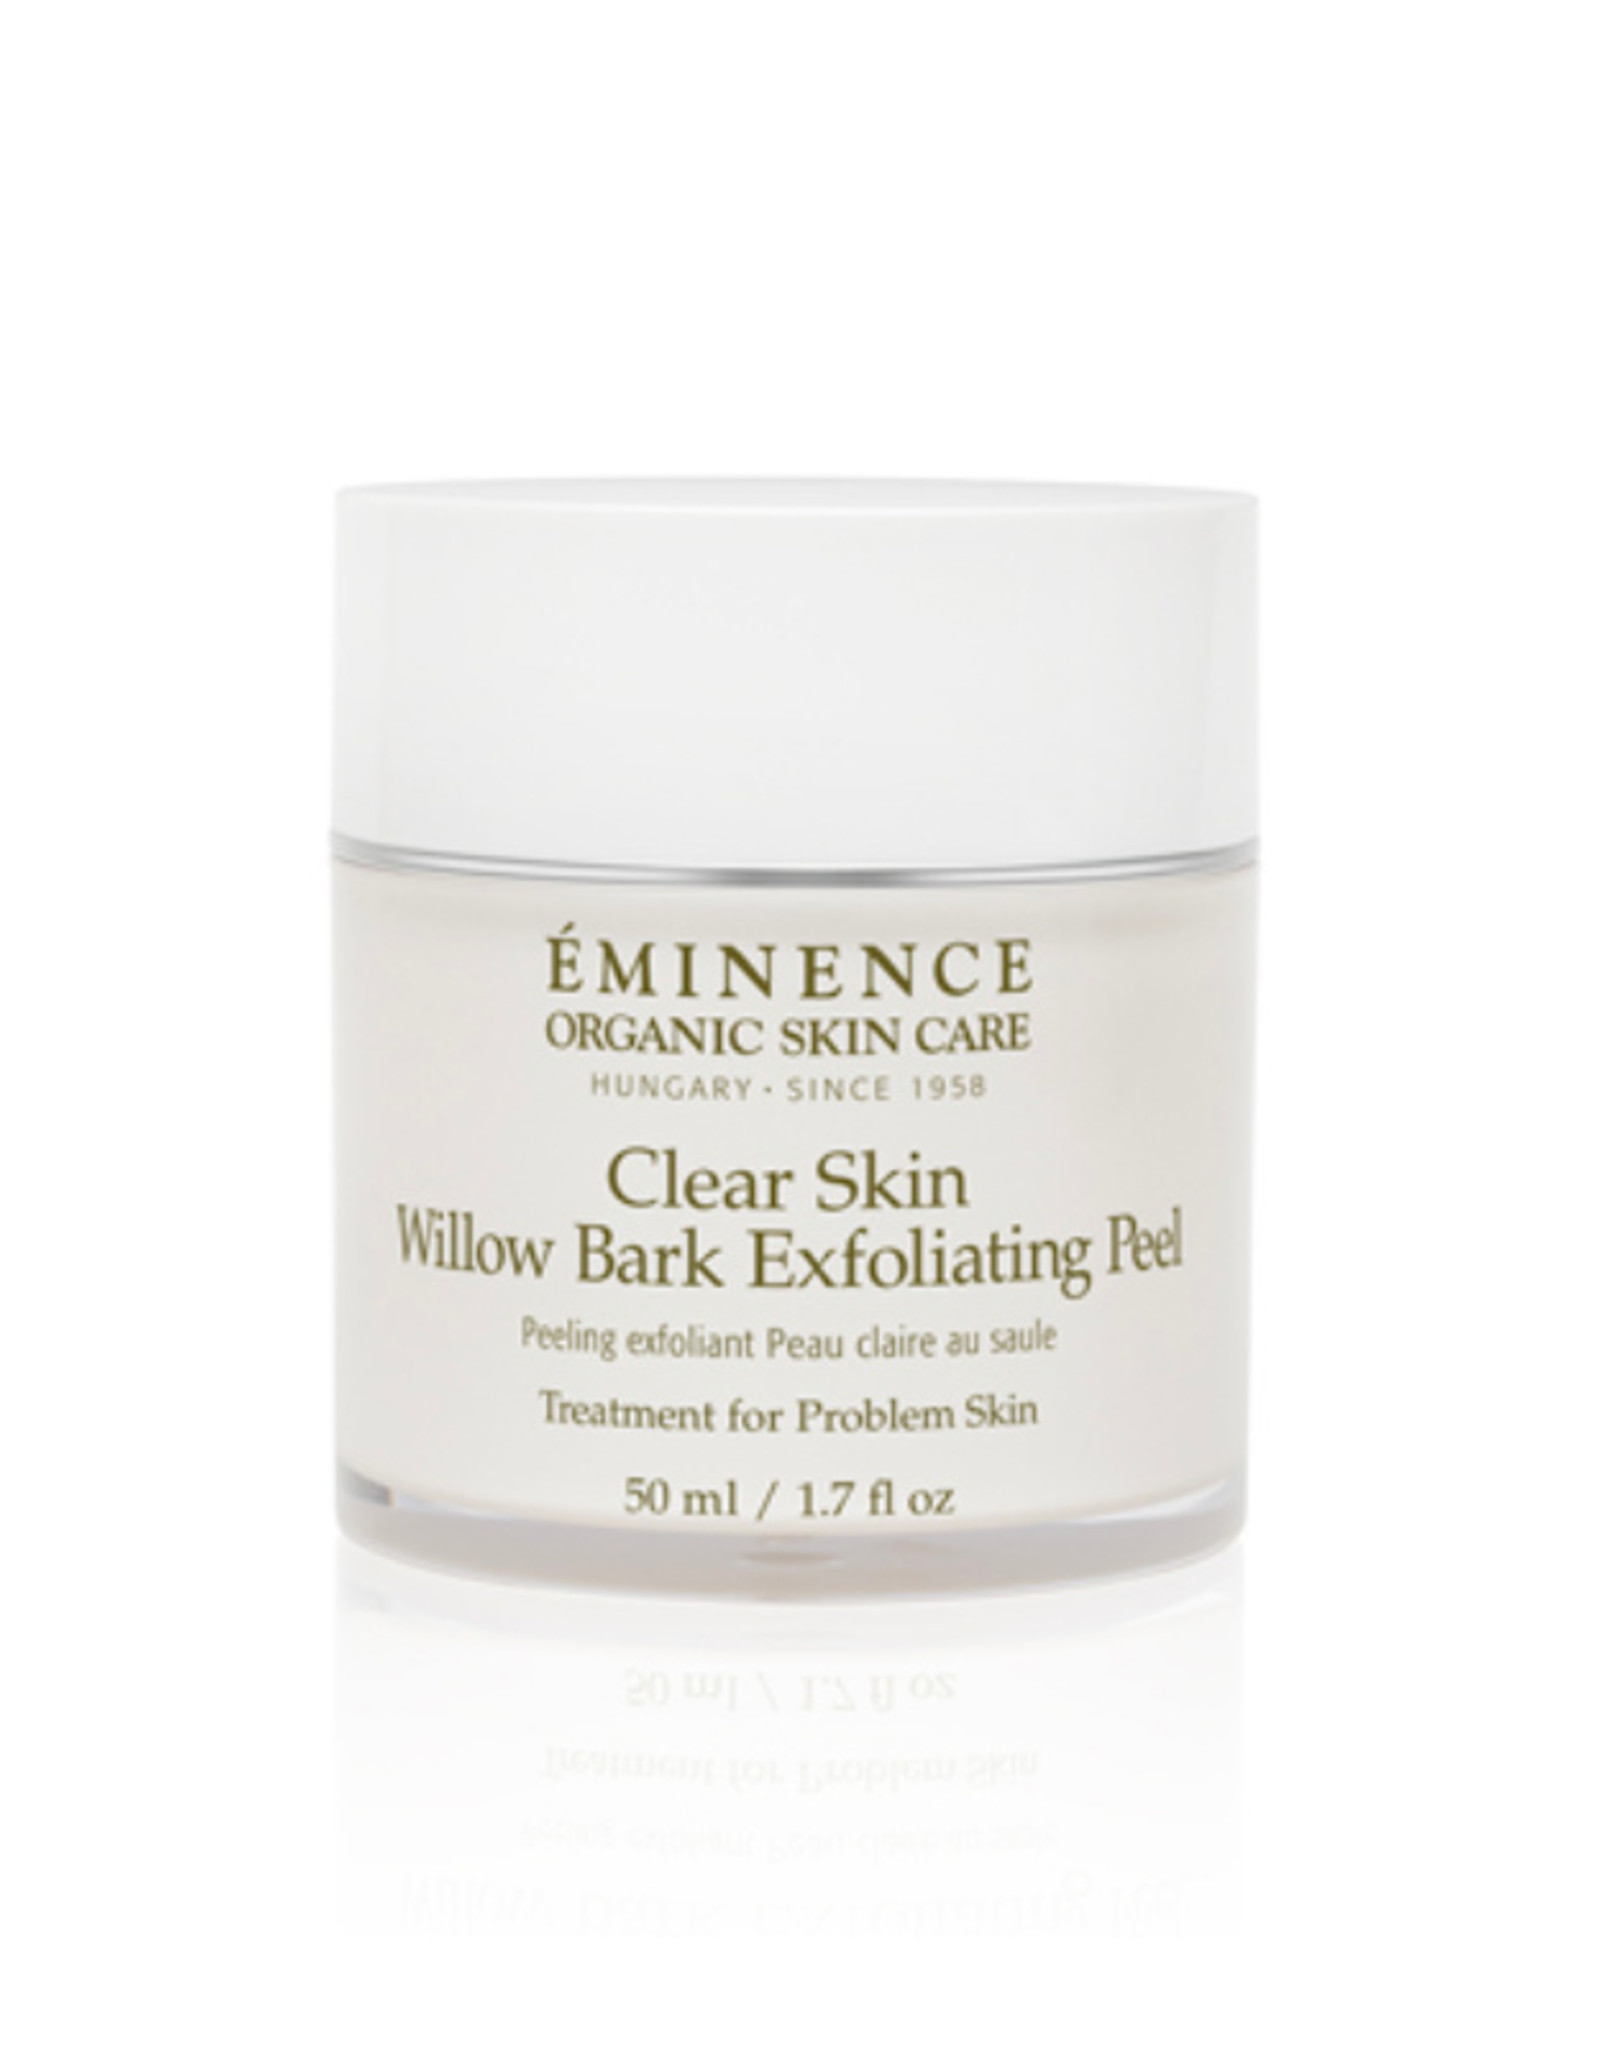 Eminence Clear Skin Willow Bark Exfoliating Peel